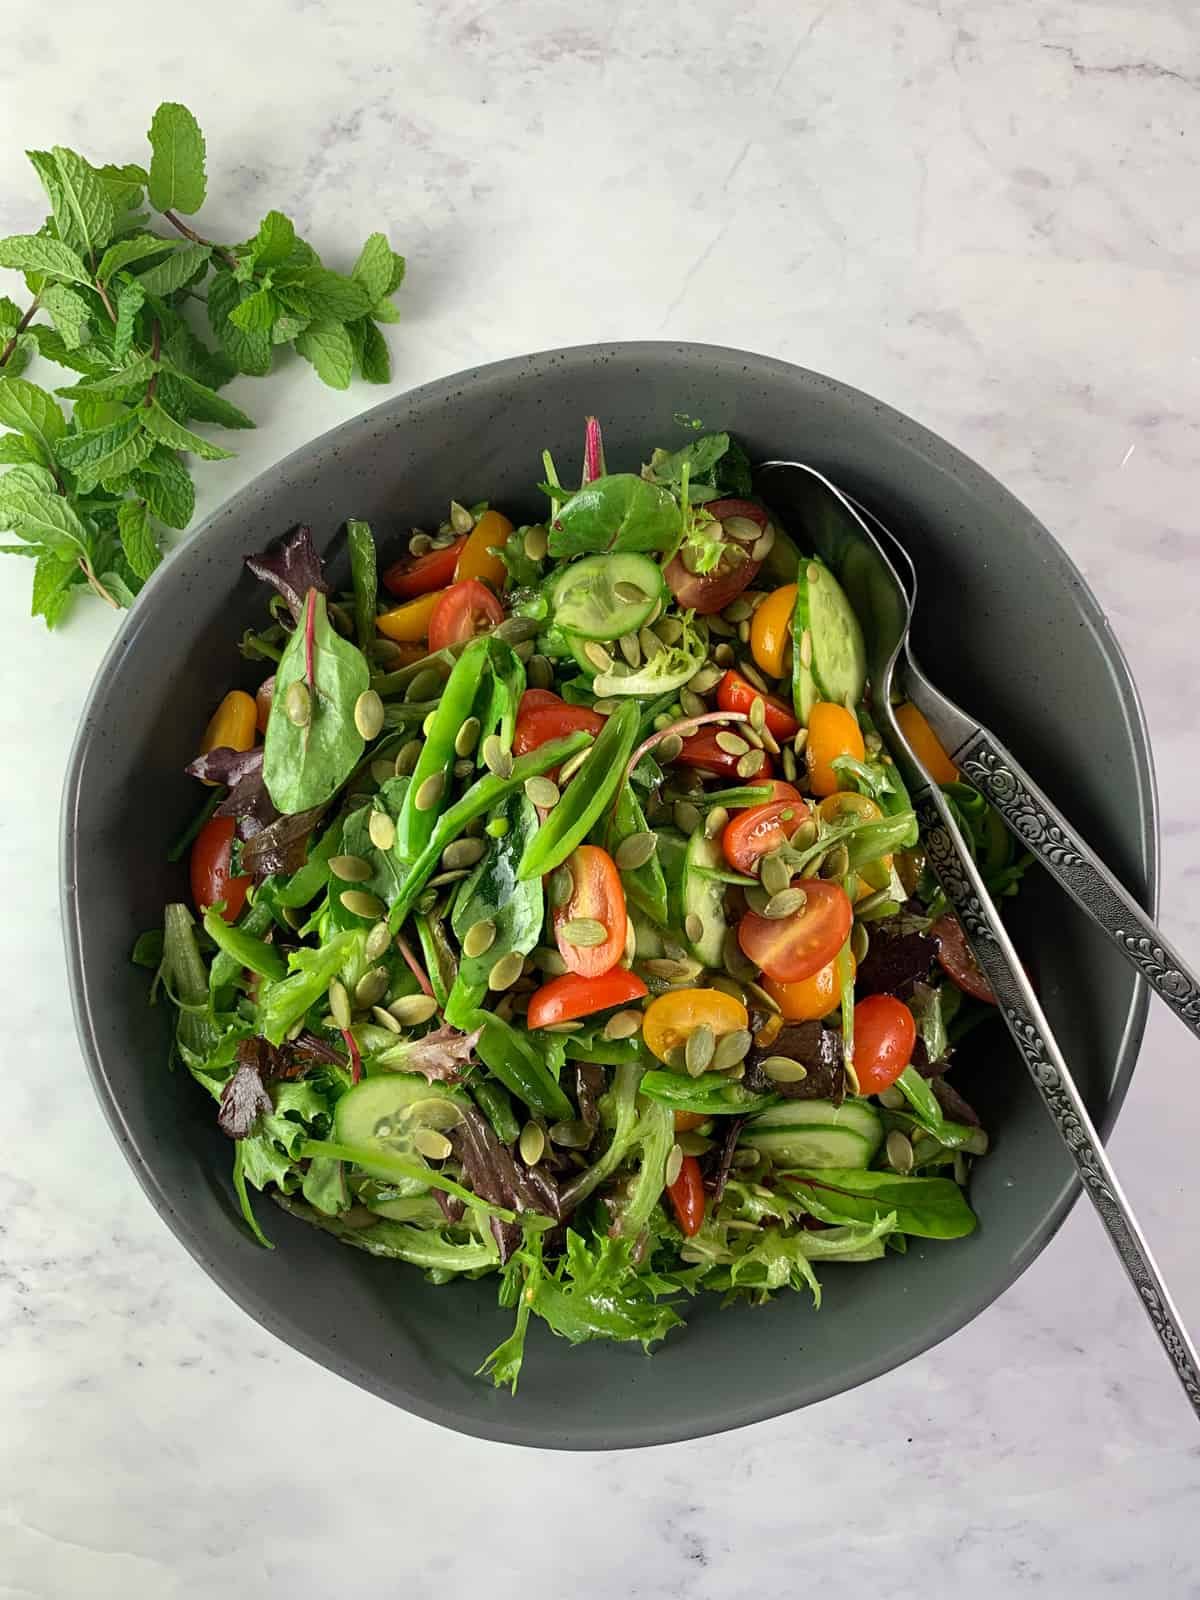 AERIAL VIEW OF SPRING MIX SALAD WITH PEAS, TOMATOES, CUCUMBERS AND SEEDS